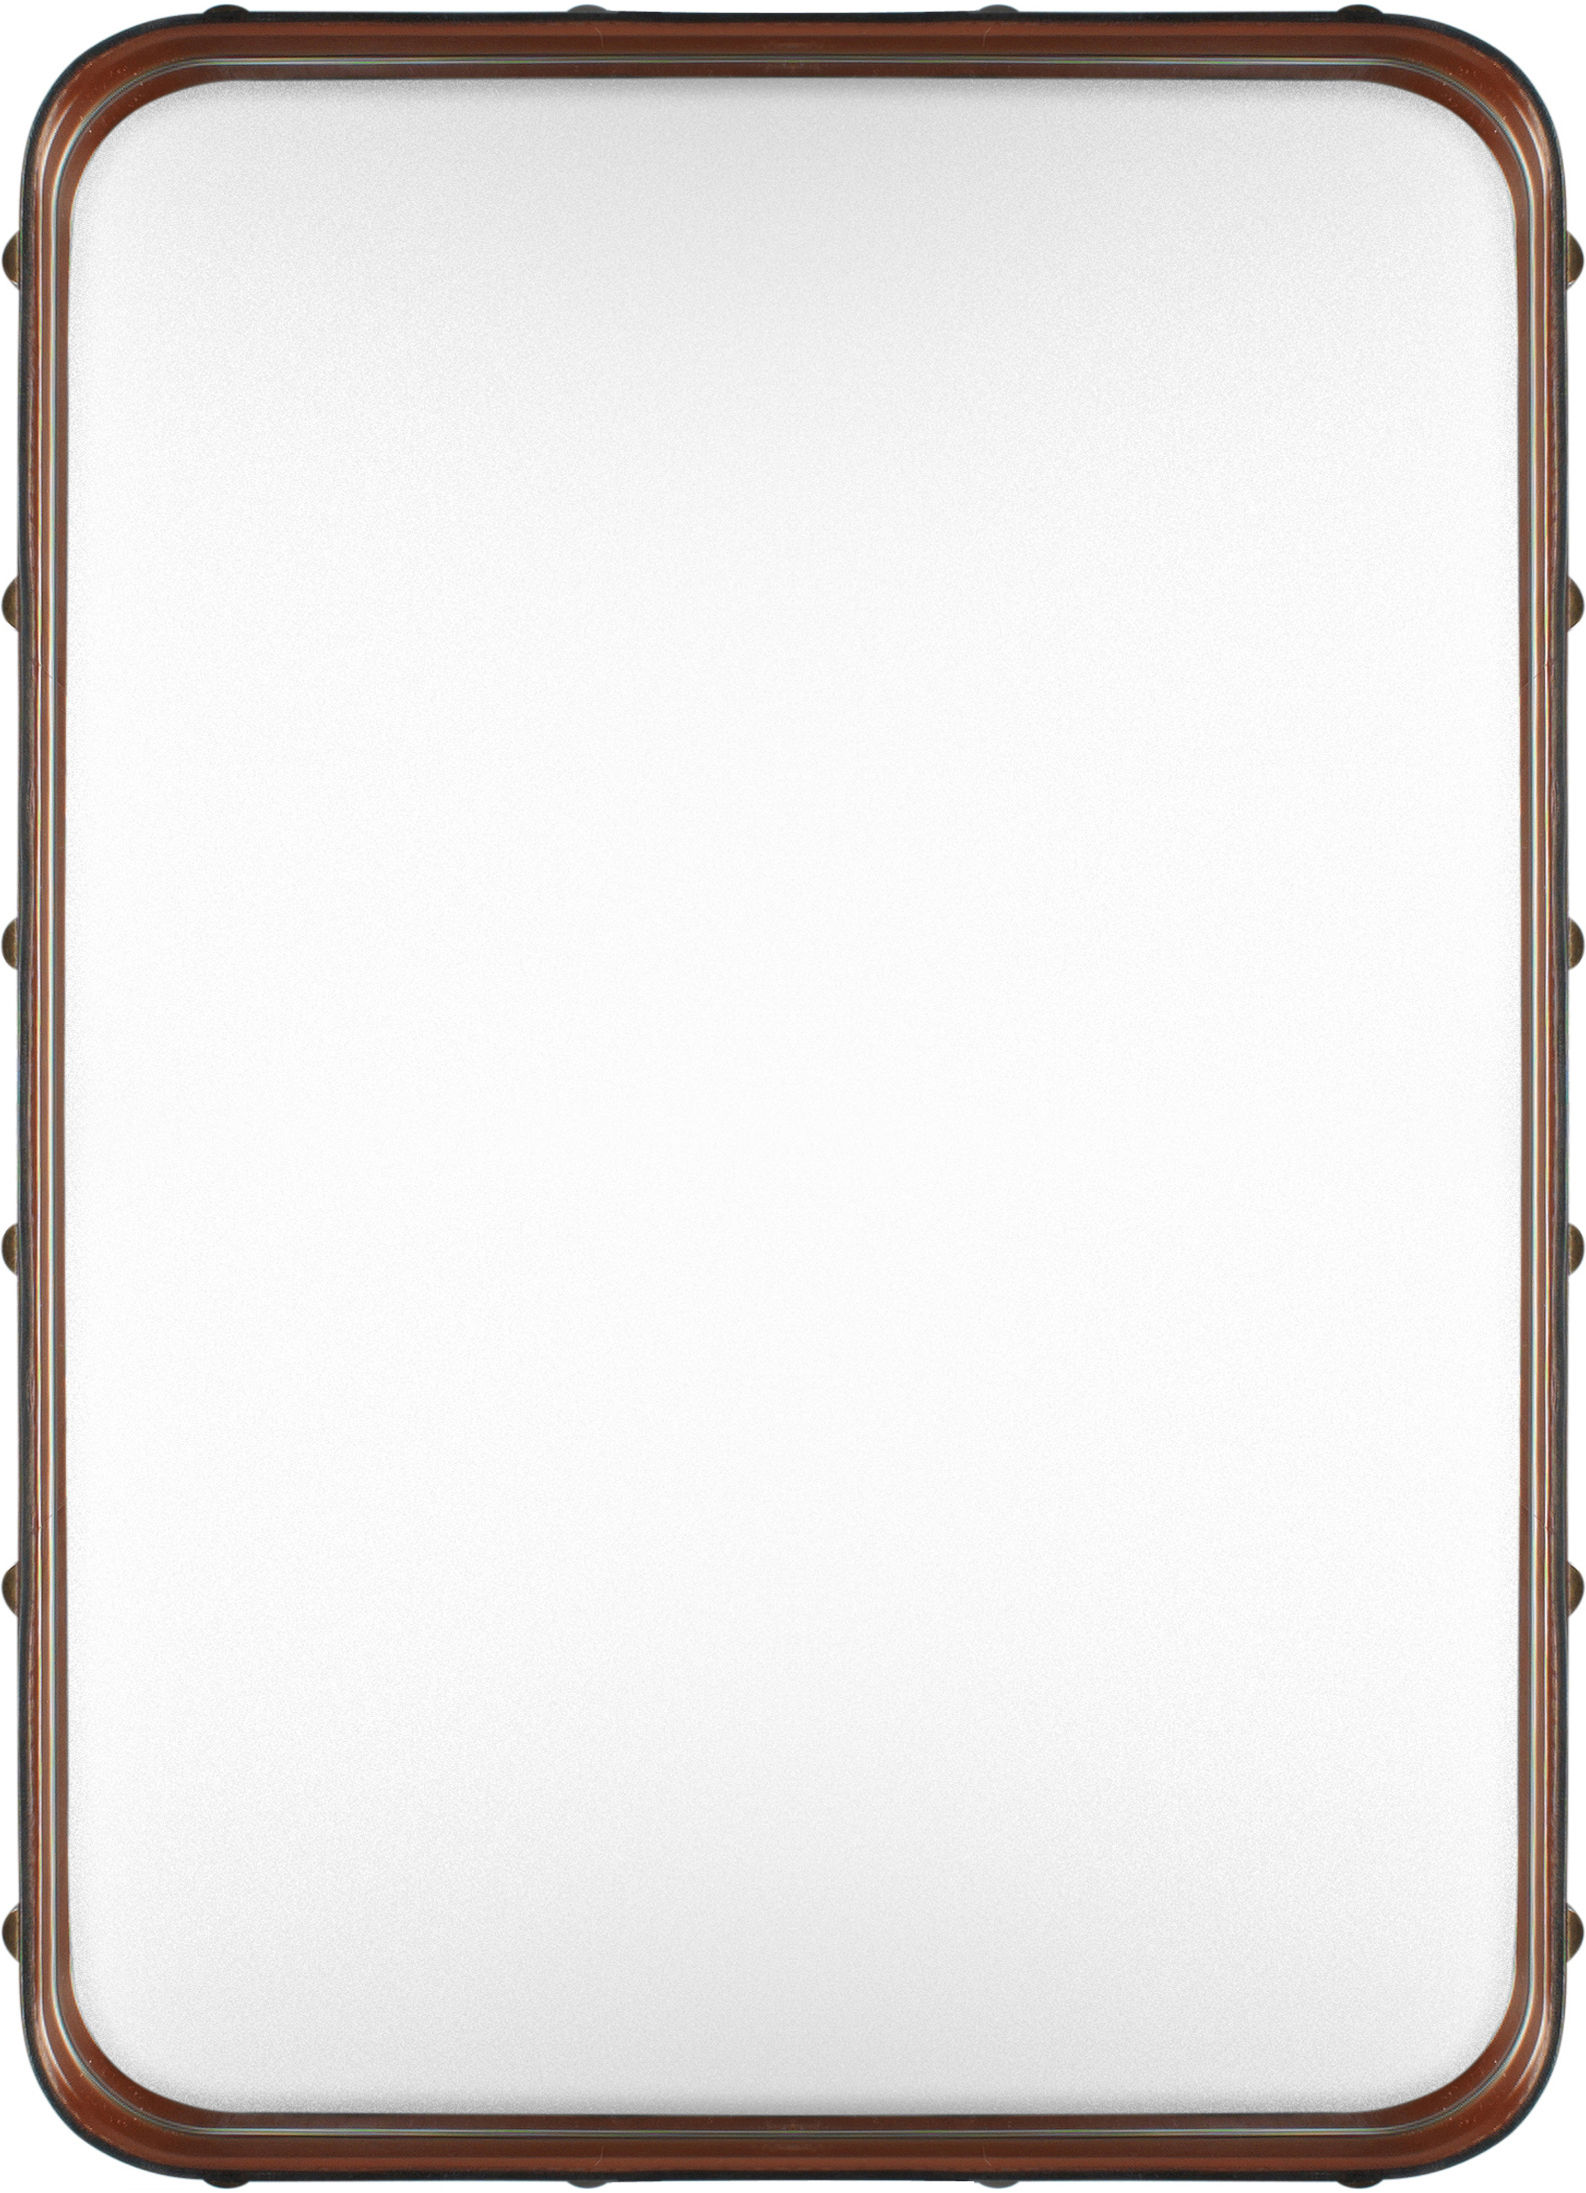 Decoration - Mirrors - Adnet Wall mirror - Rectangular - 70 x 48 cm by Gubi - Natural leather - Brass, Leather